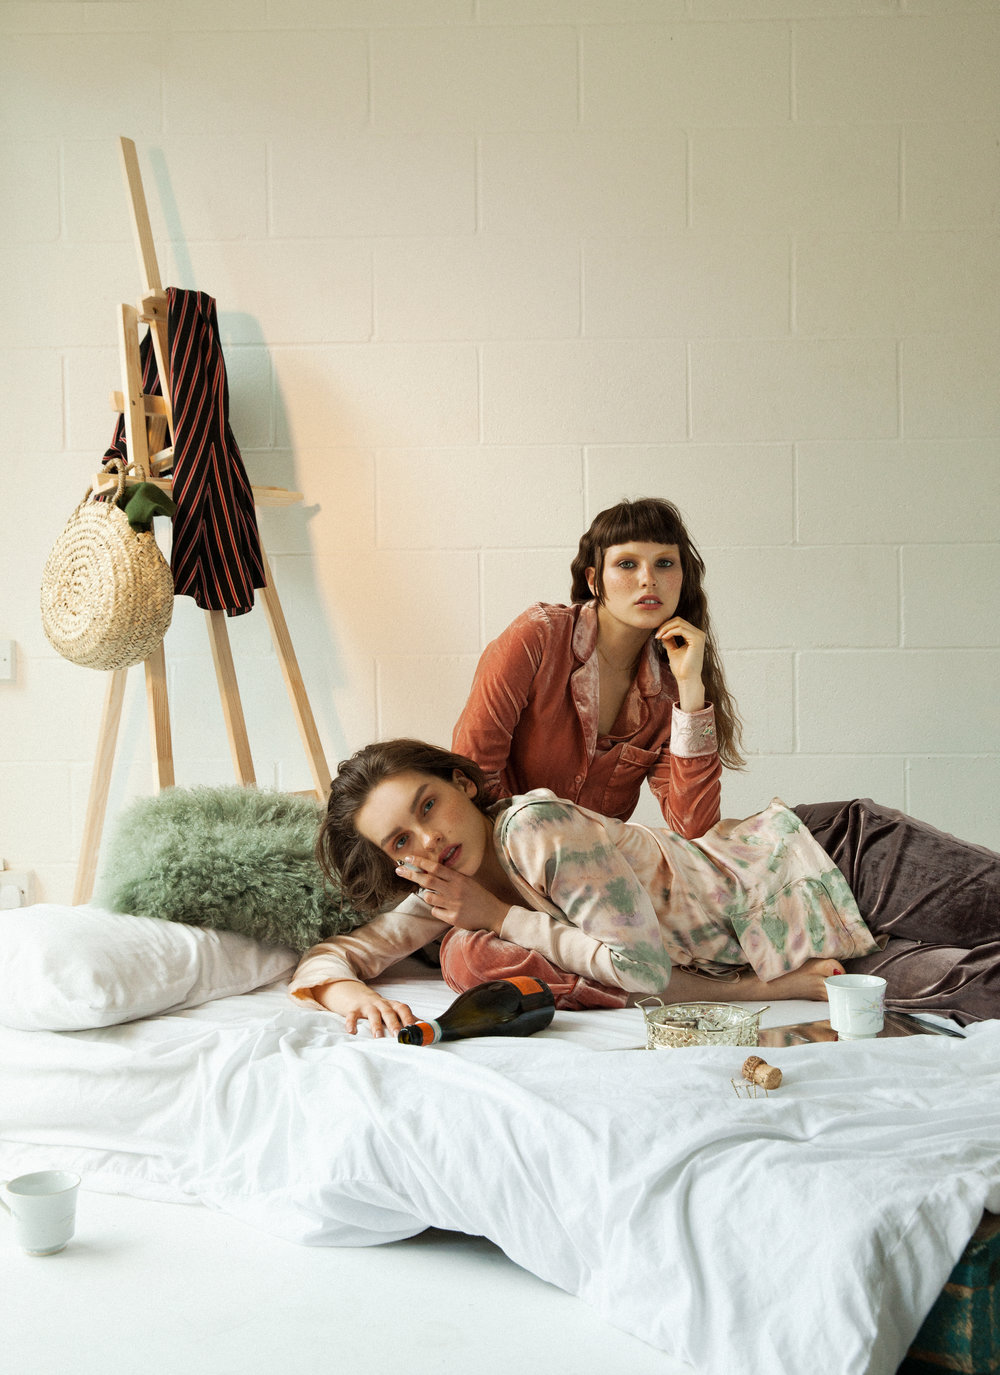 LEFT Trousers: Scotch & Soda Jacket: Scotch & Soda Necklace: The Boyscouts RIGHT Trousers: Naya Rea Shirt: Raquel Allegra BED SET Basket: Blooming Dreamer Striped dress: Poustovit